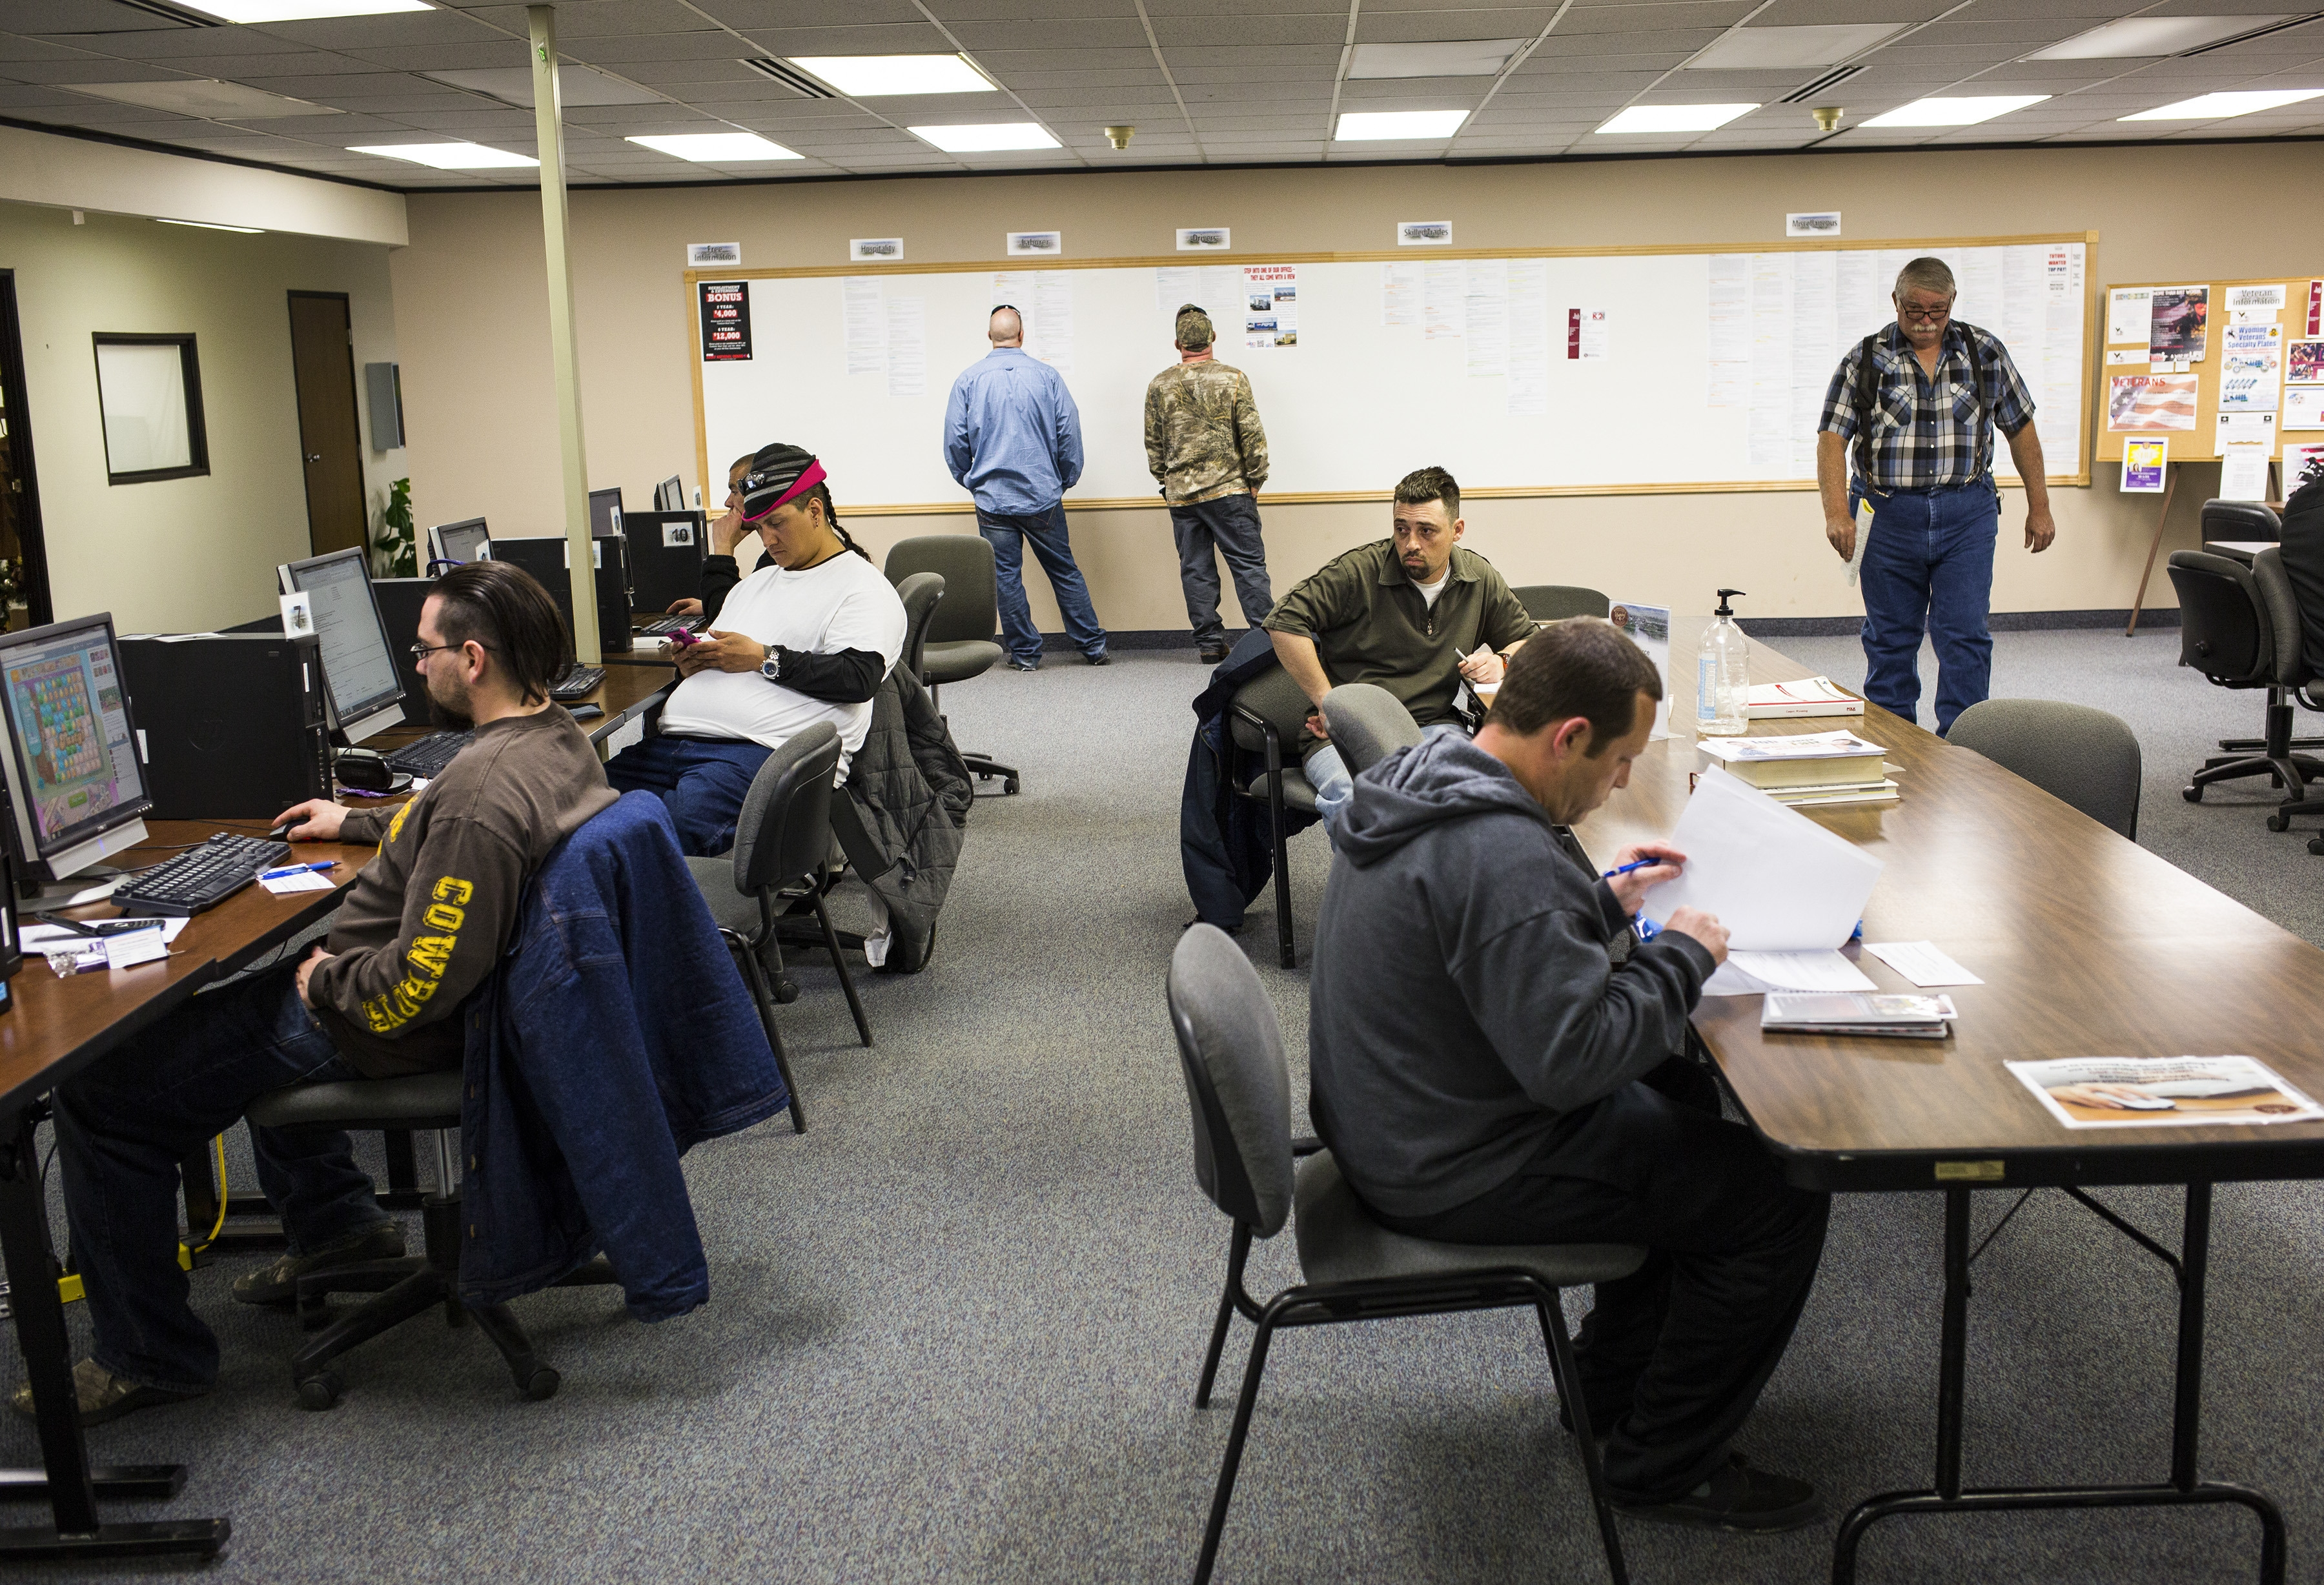 Job seekers use resources at the Department of Workforce Services in Casper, Wyo., to search for employment in April as the nation's economic growth slowed and hiring fell. (New York Times)